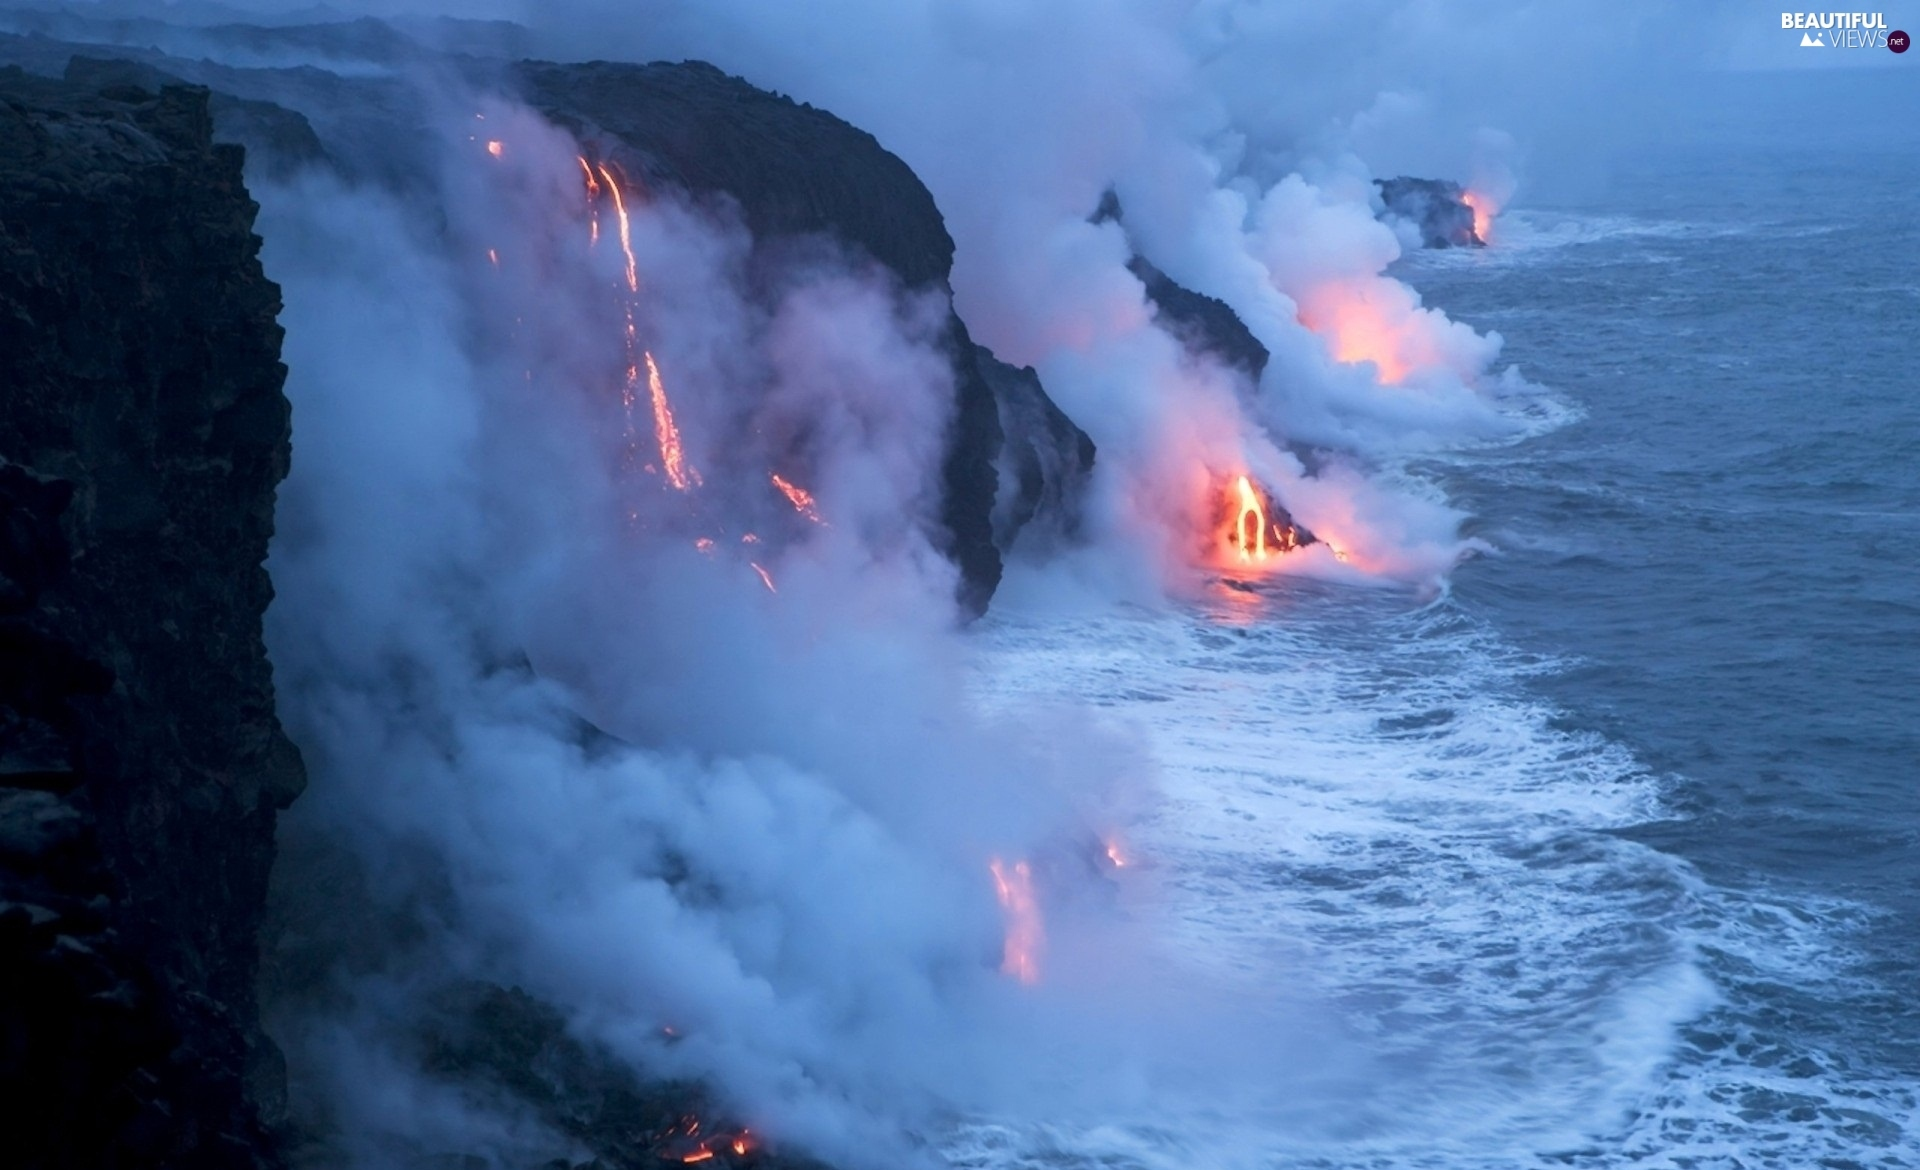 volcano, sea, Mountains, Lava